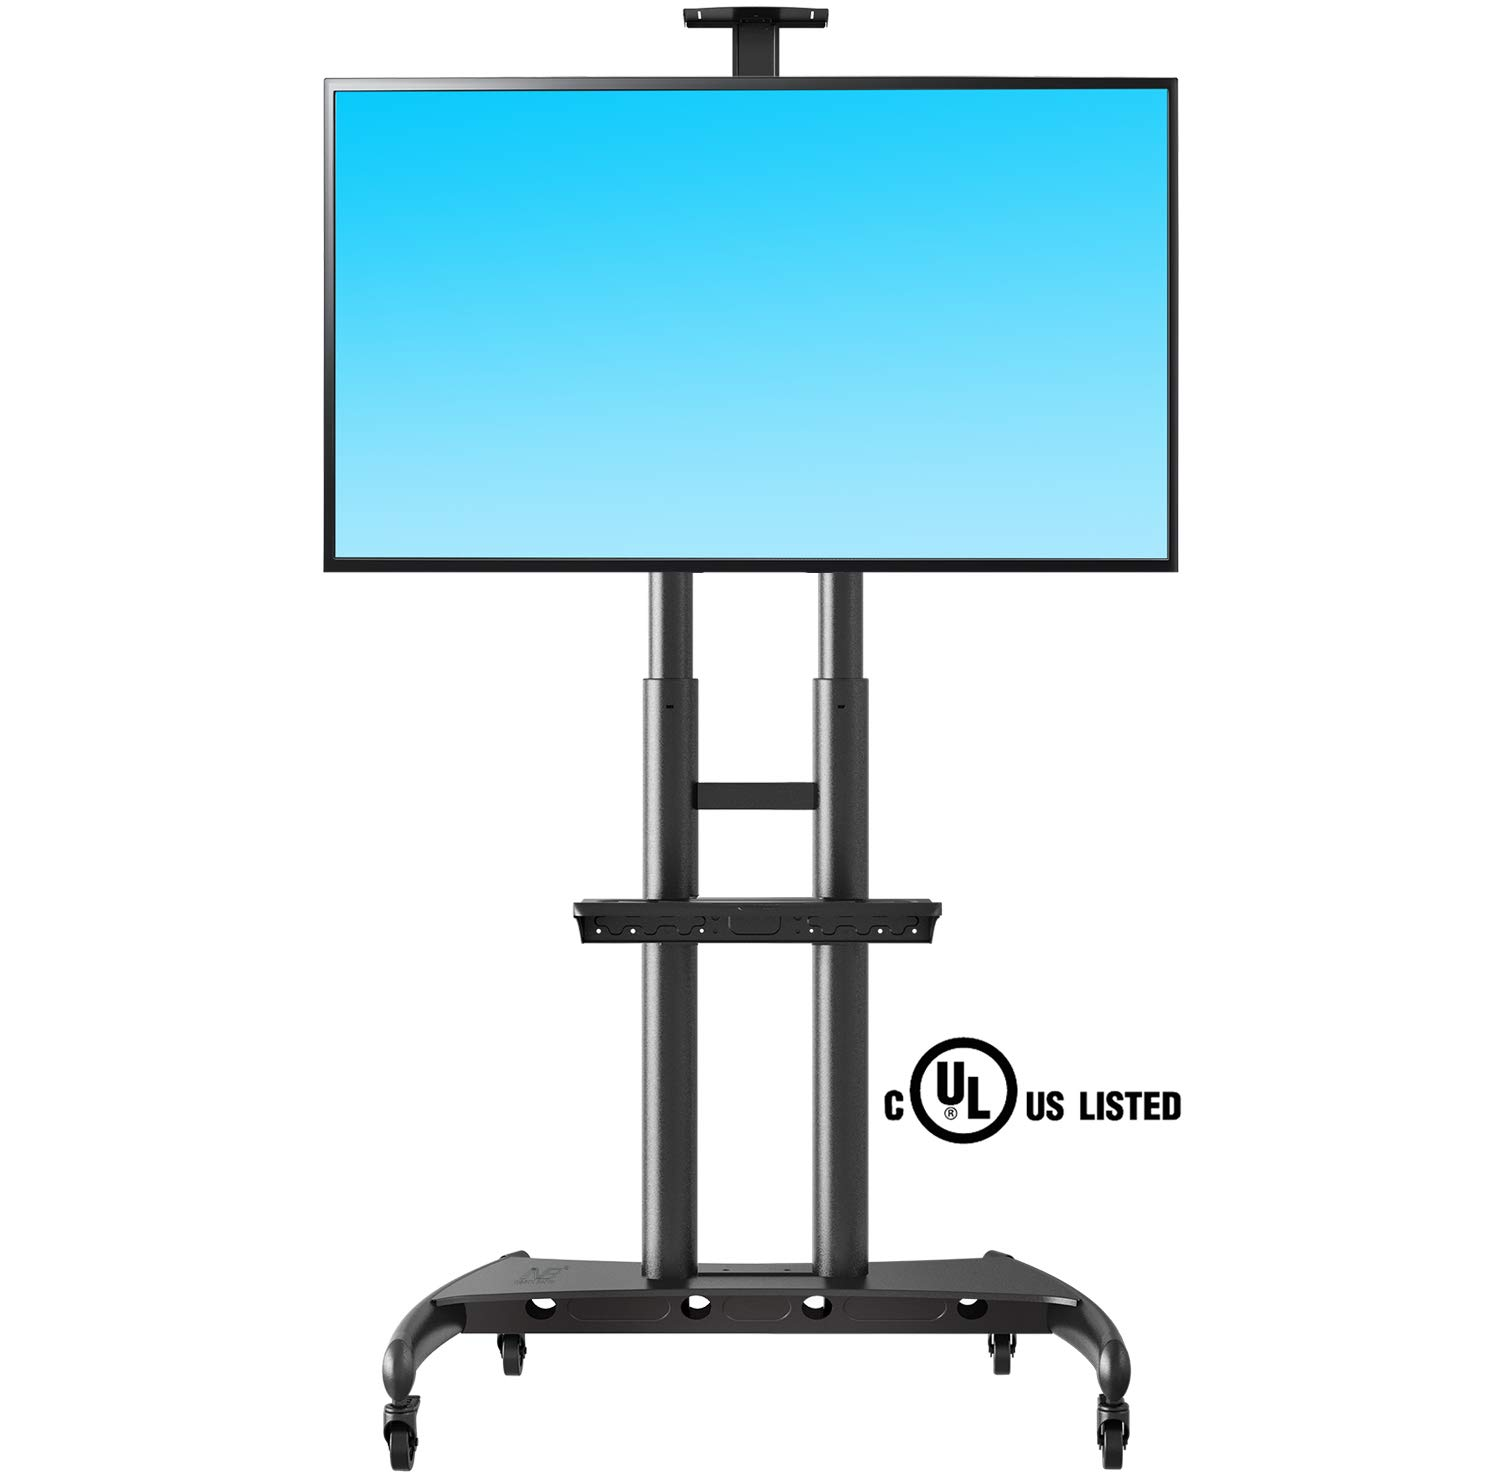 NB North Bayou Mobile TV Cart TV Stand with Wheels for 55'' - 80'' Inch LCD LED OLED Plasma Flat Panel Screens up to 200lbs AVA1800-70-1P (Black) by NB North Bayou